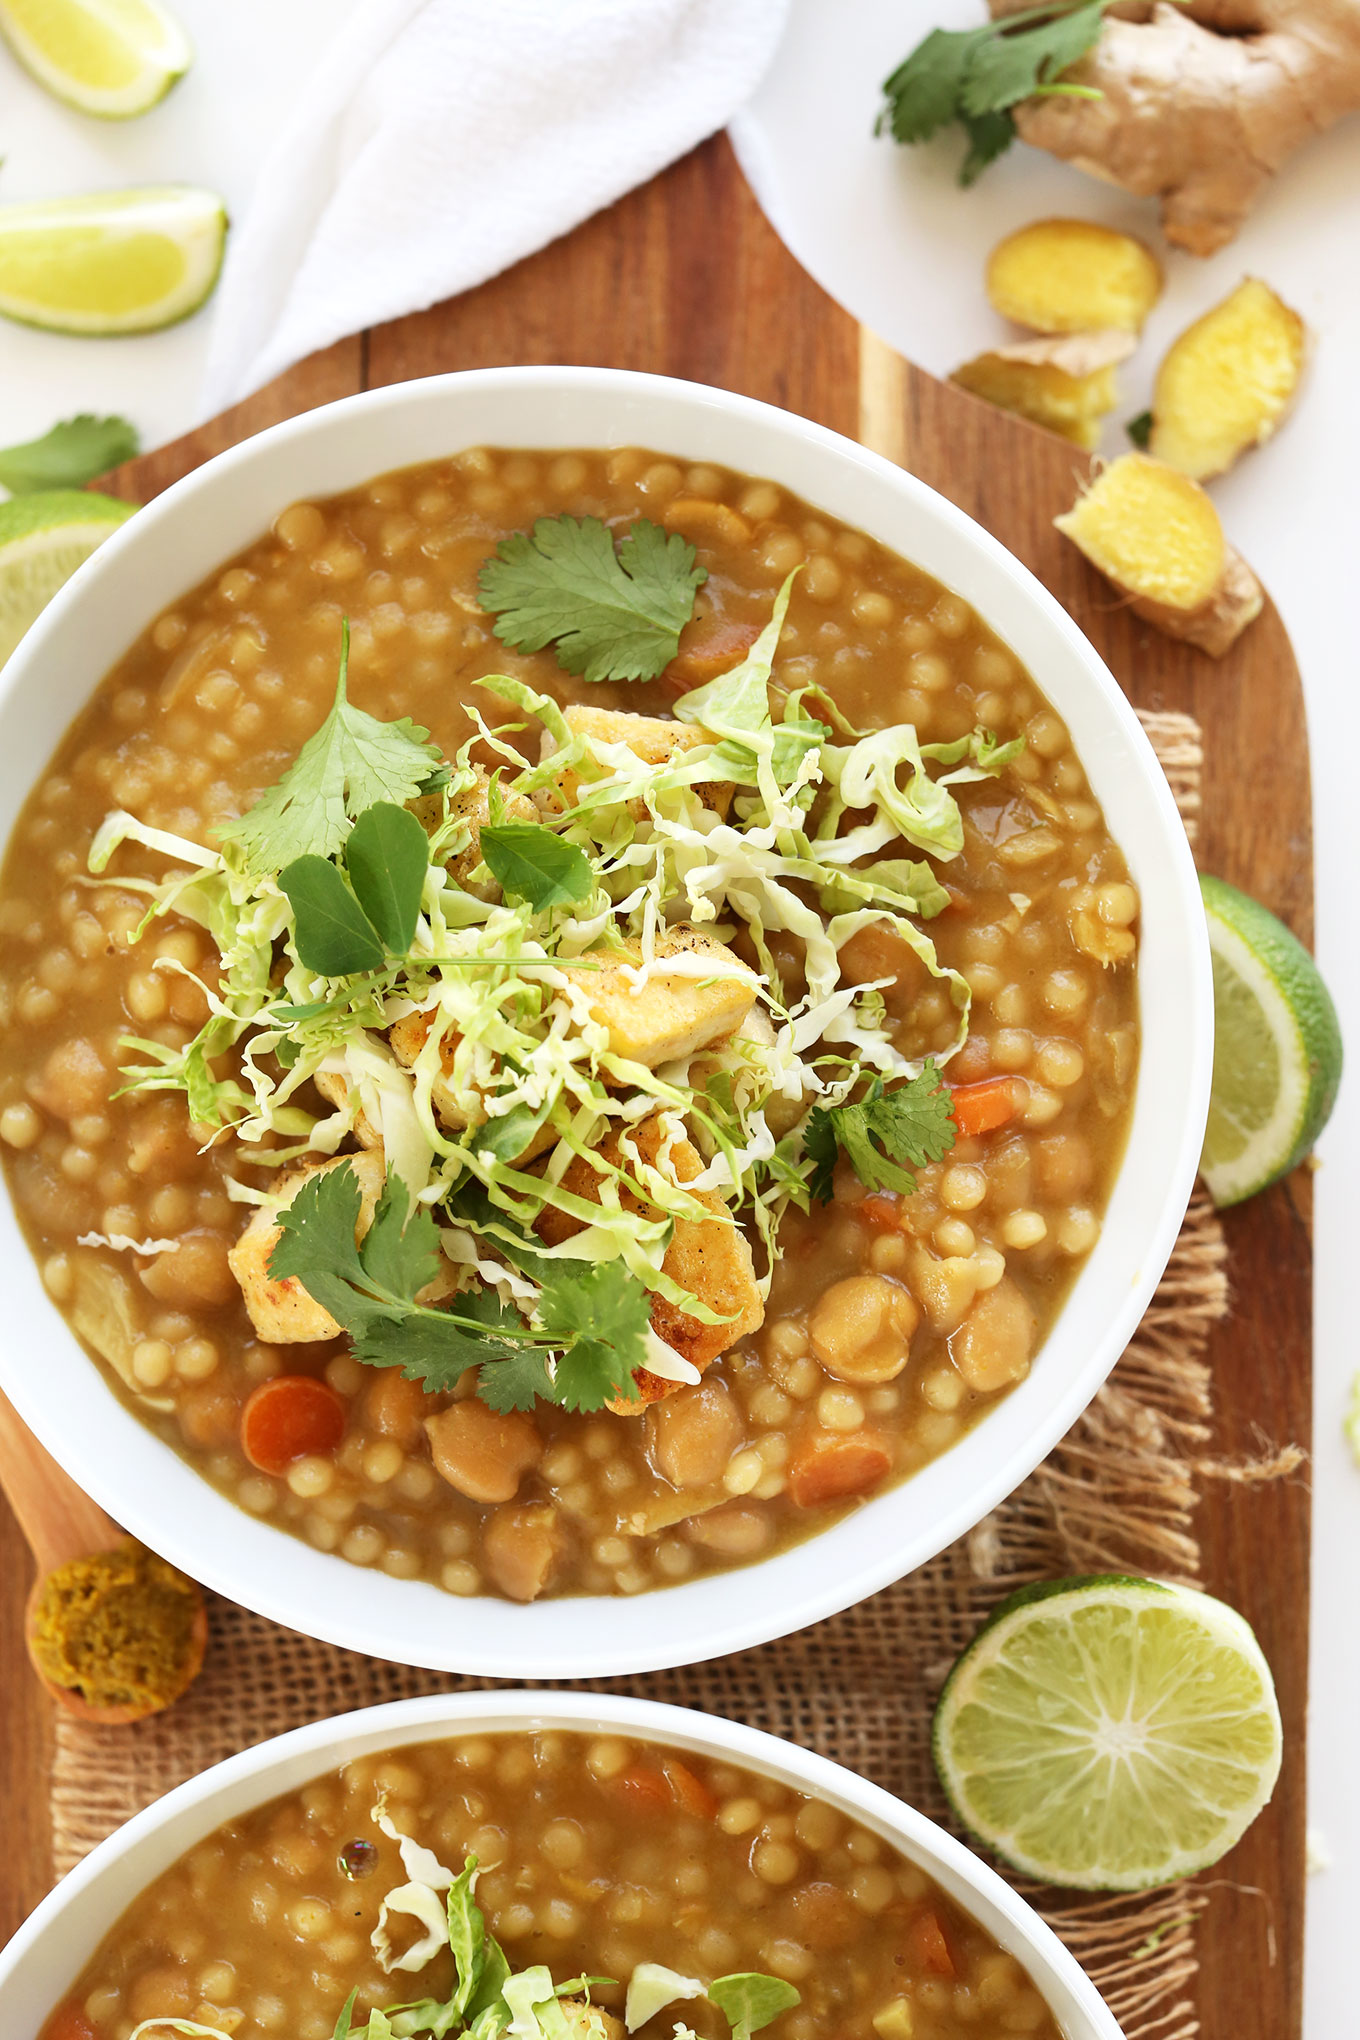 Bowls of our 30-Minute Green Chickpea Curry recipe for a quick vegan dinner